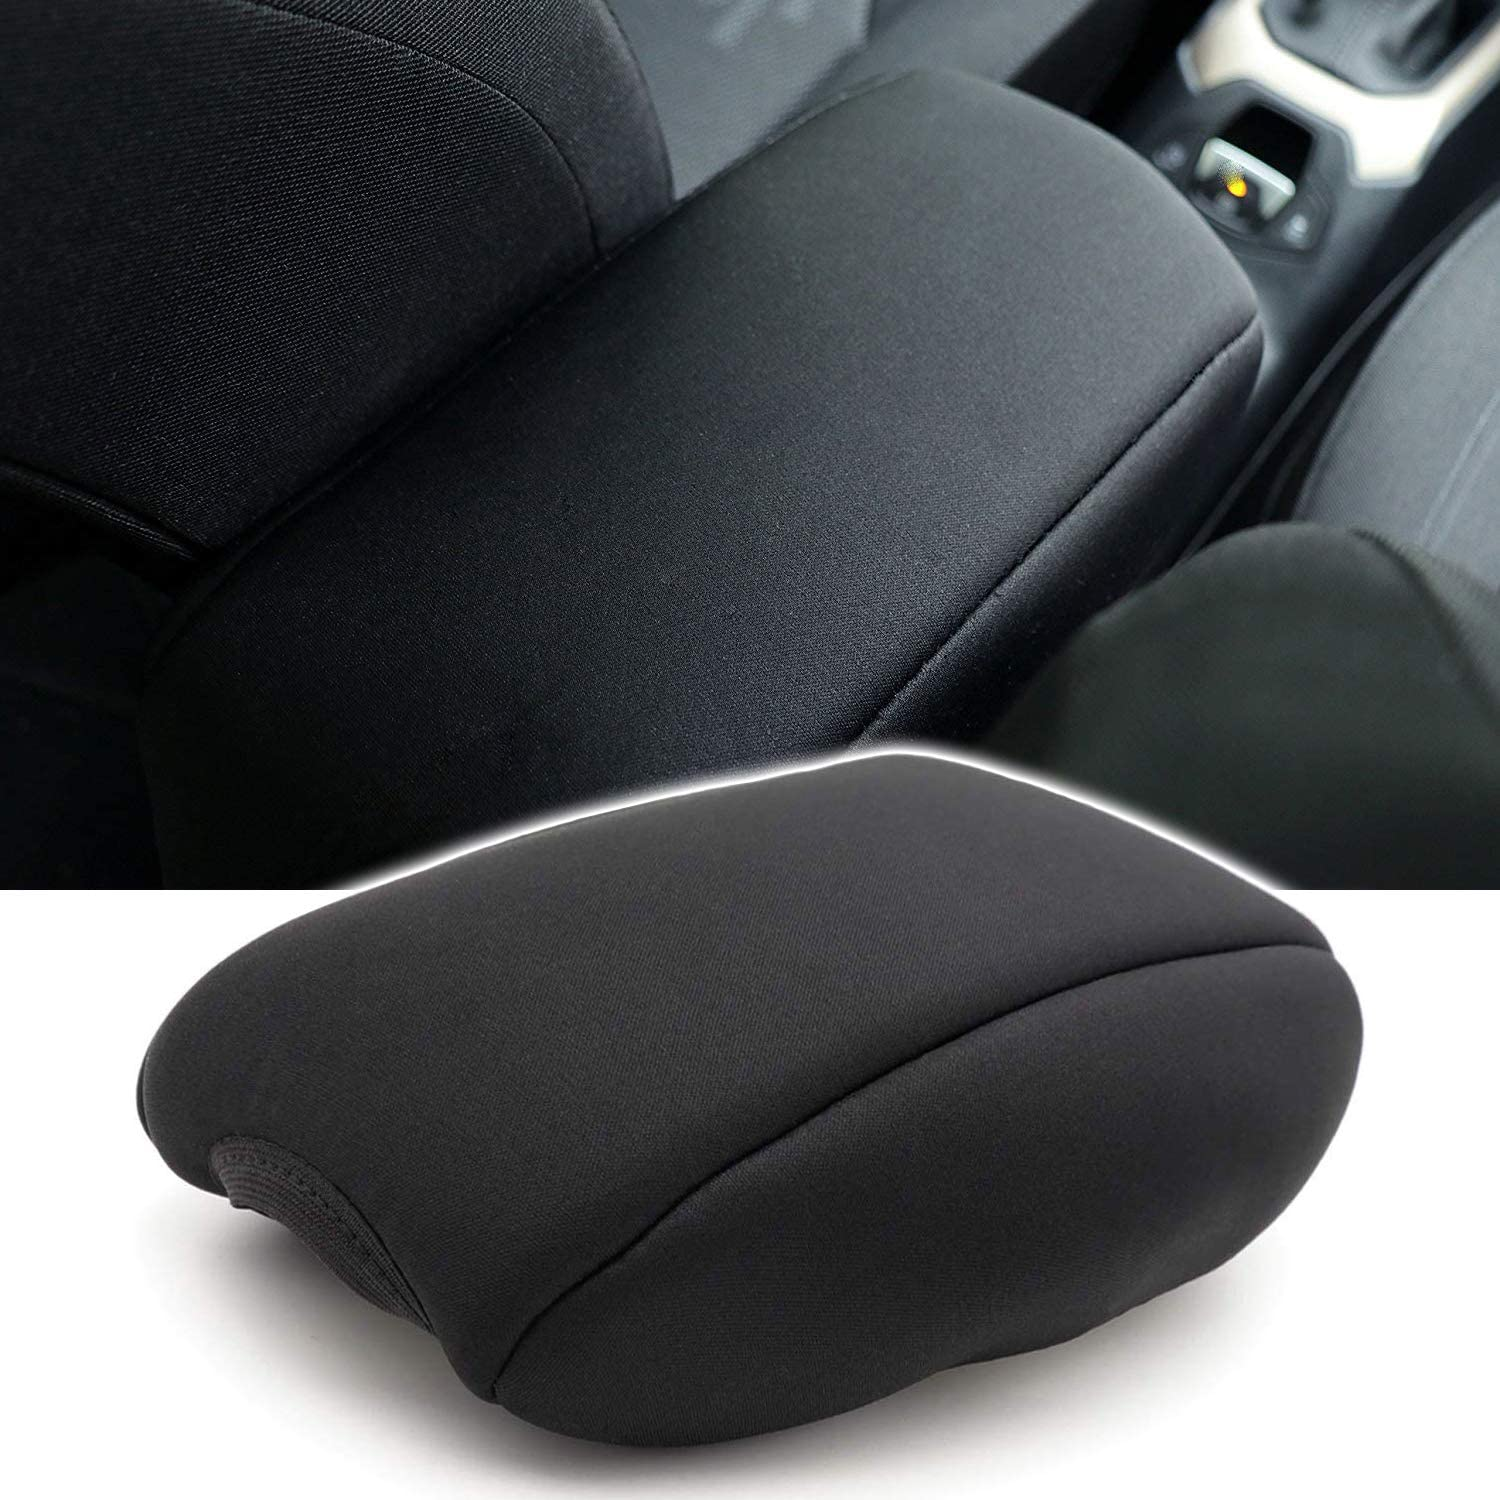 Car Neoprene Center Console Armrest Pad Cover Black Protector Cushion /& Exterior Armrest Storage Box Fit for Jeep Renegade 2015 2016 2017 2018